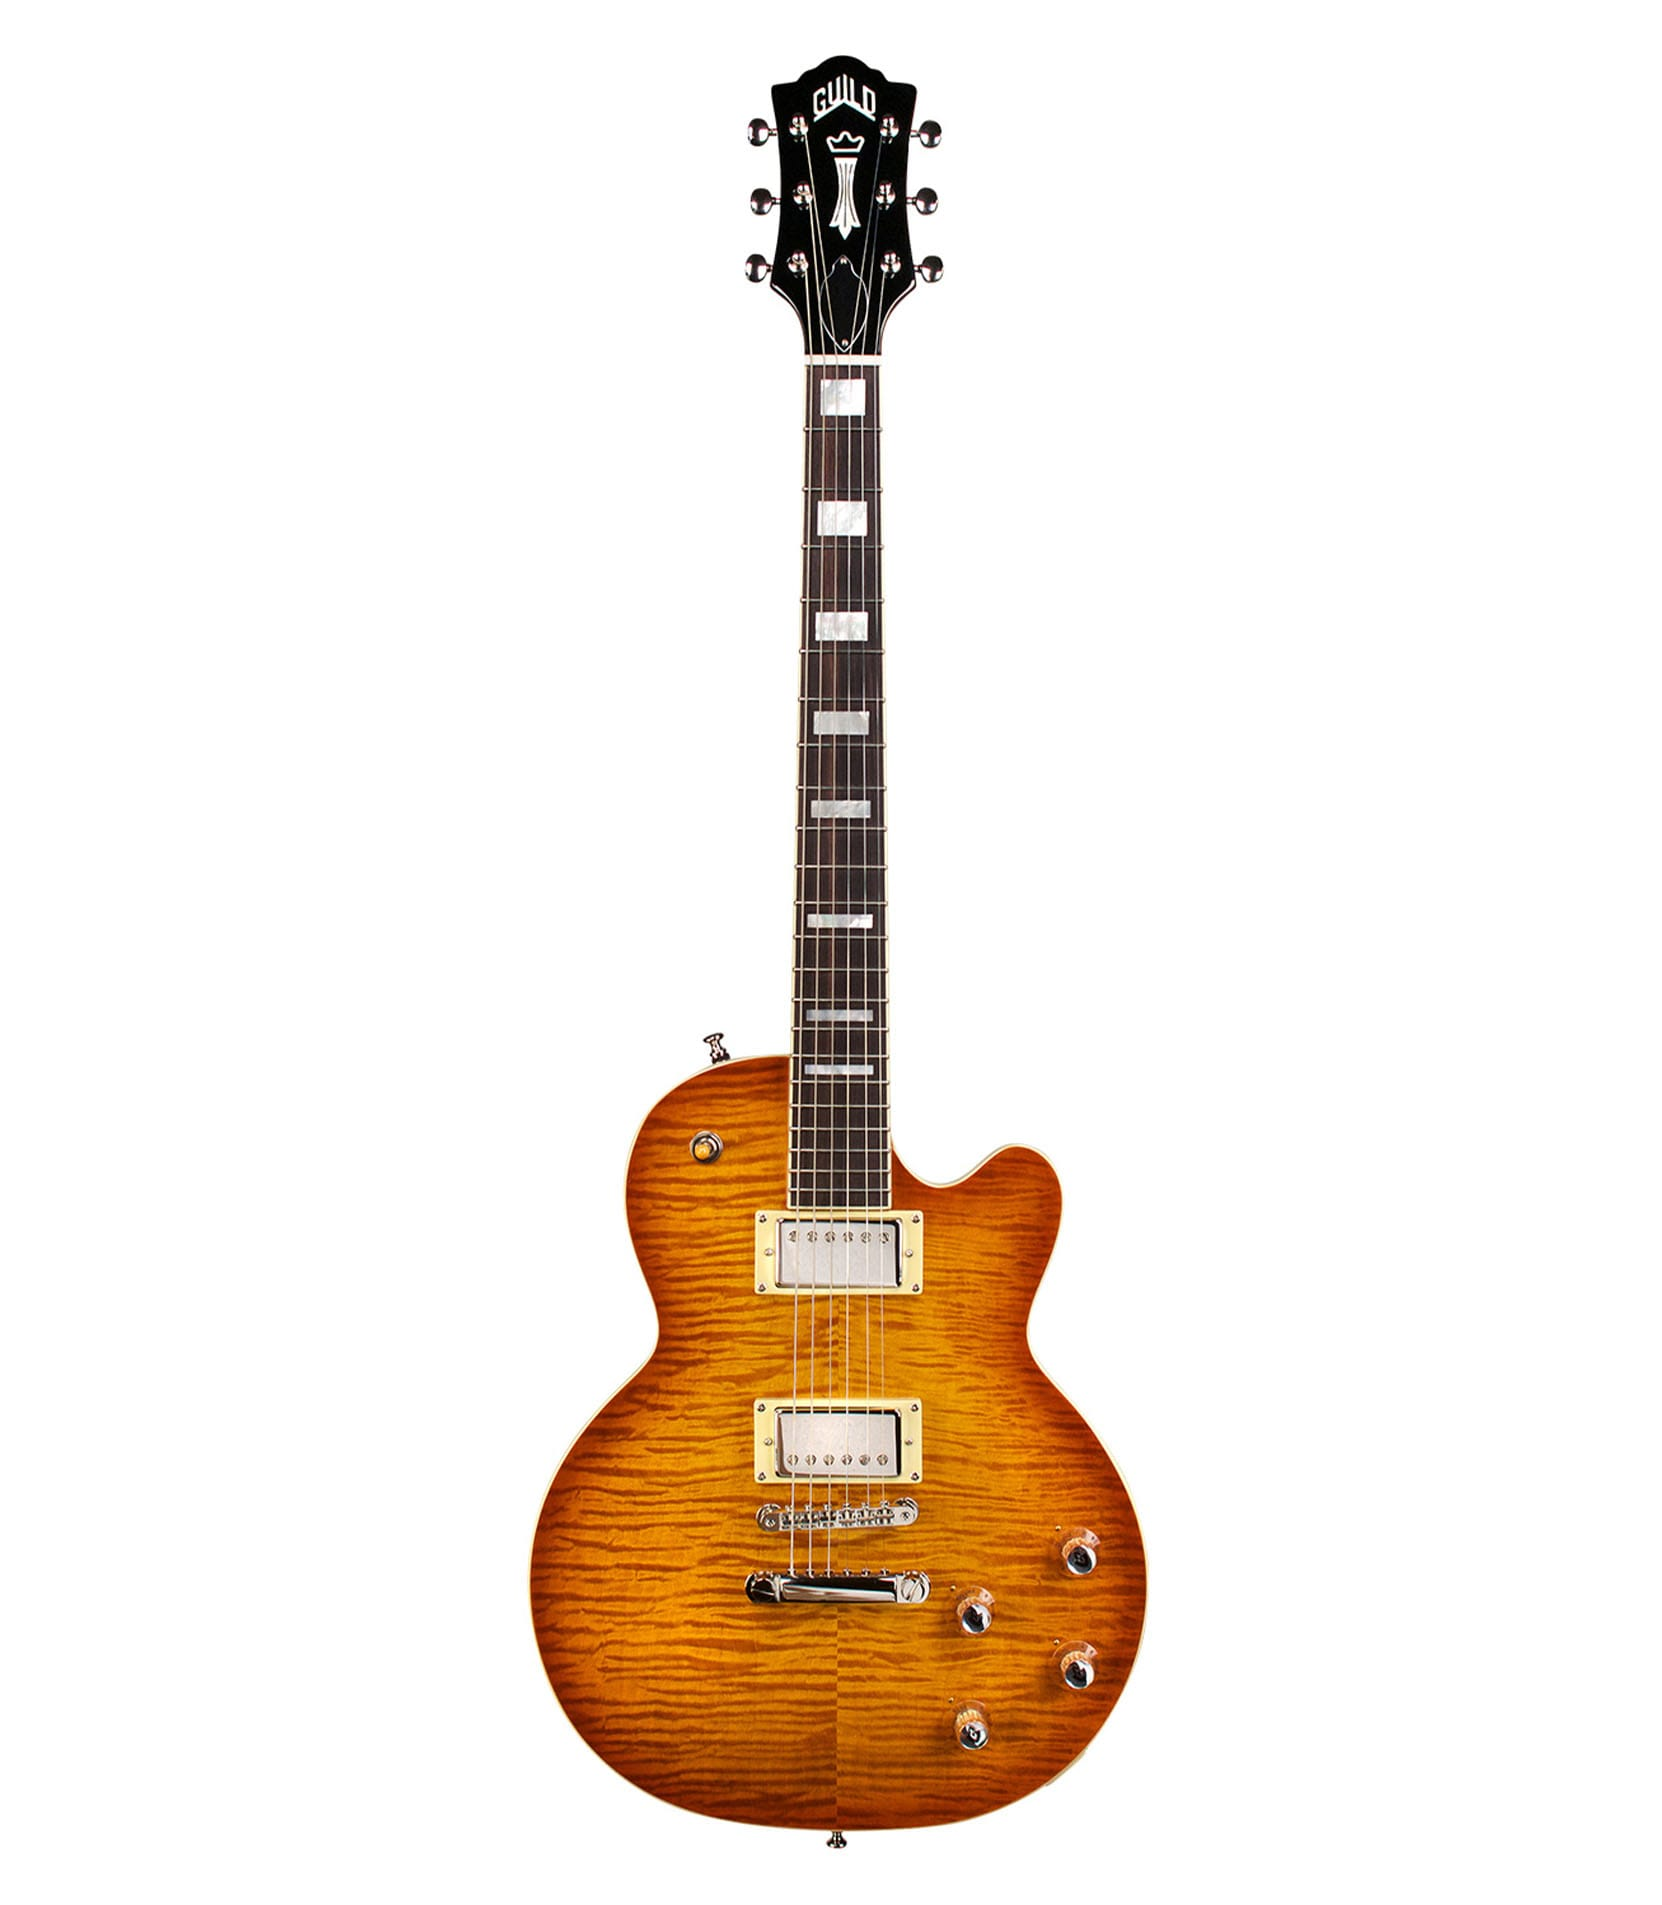 Buy guild Bluesbird Guitar Iced Tea Burst Finish Melody House